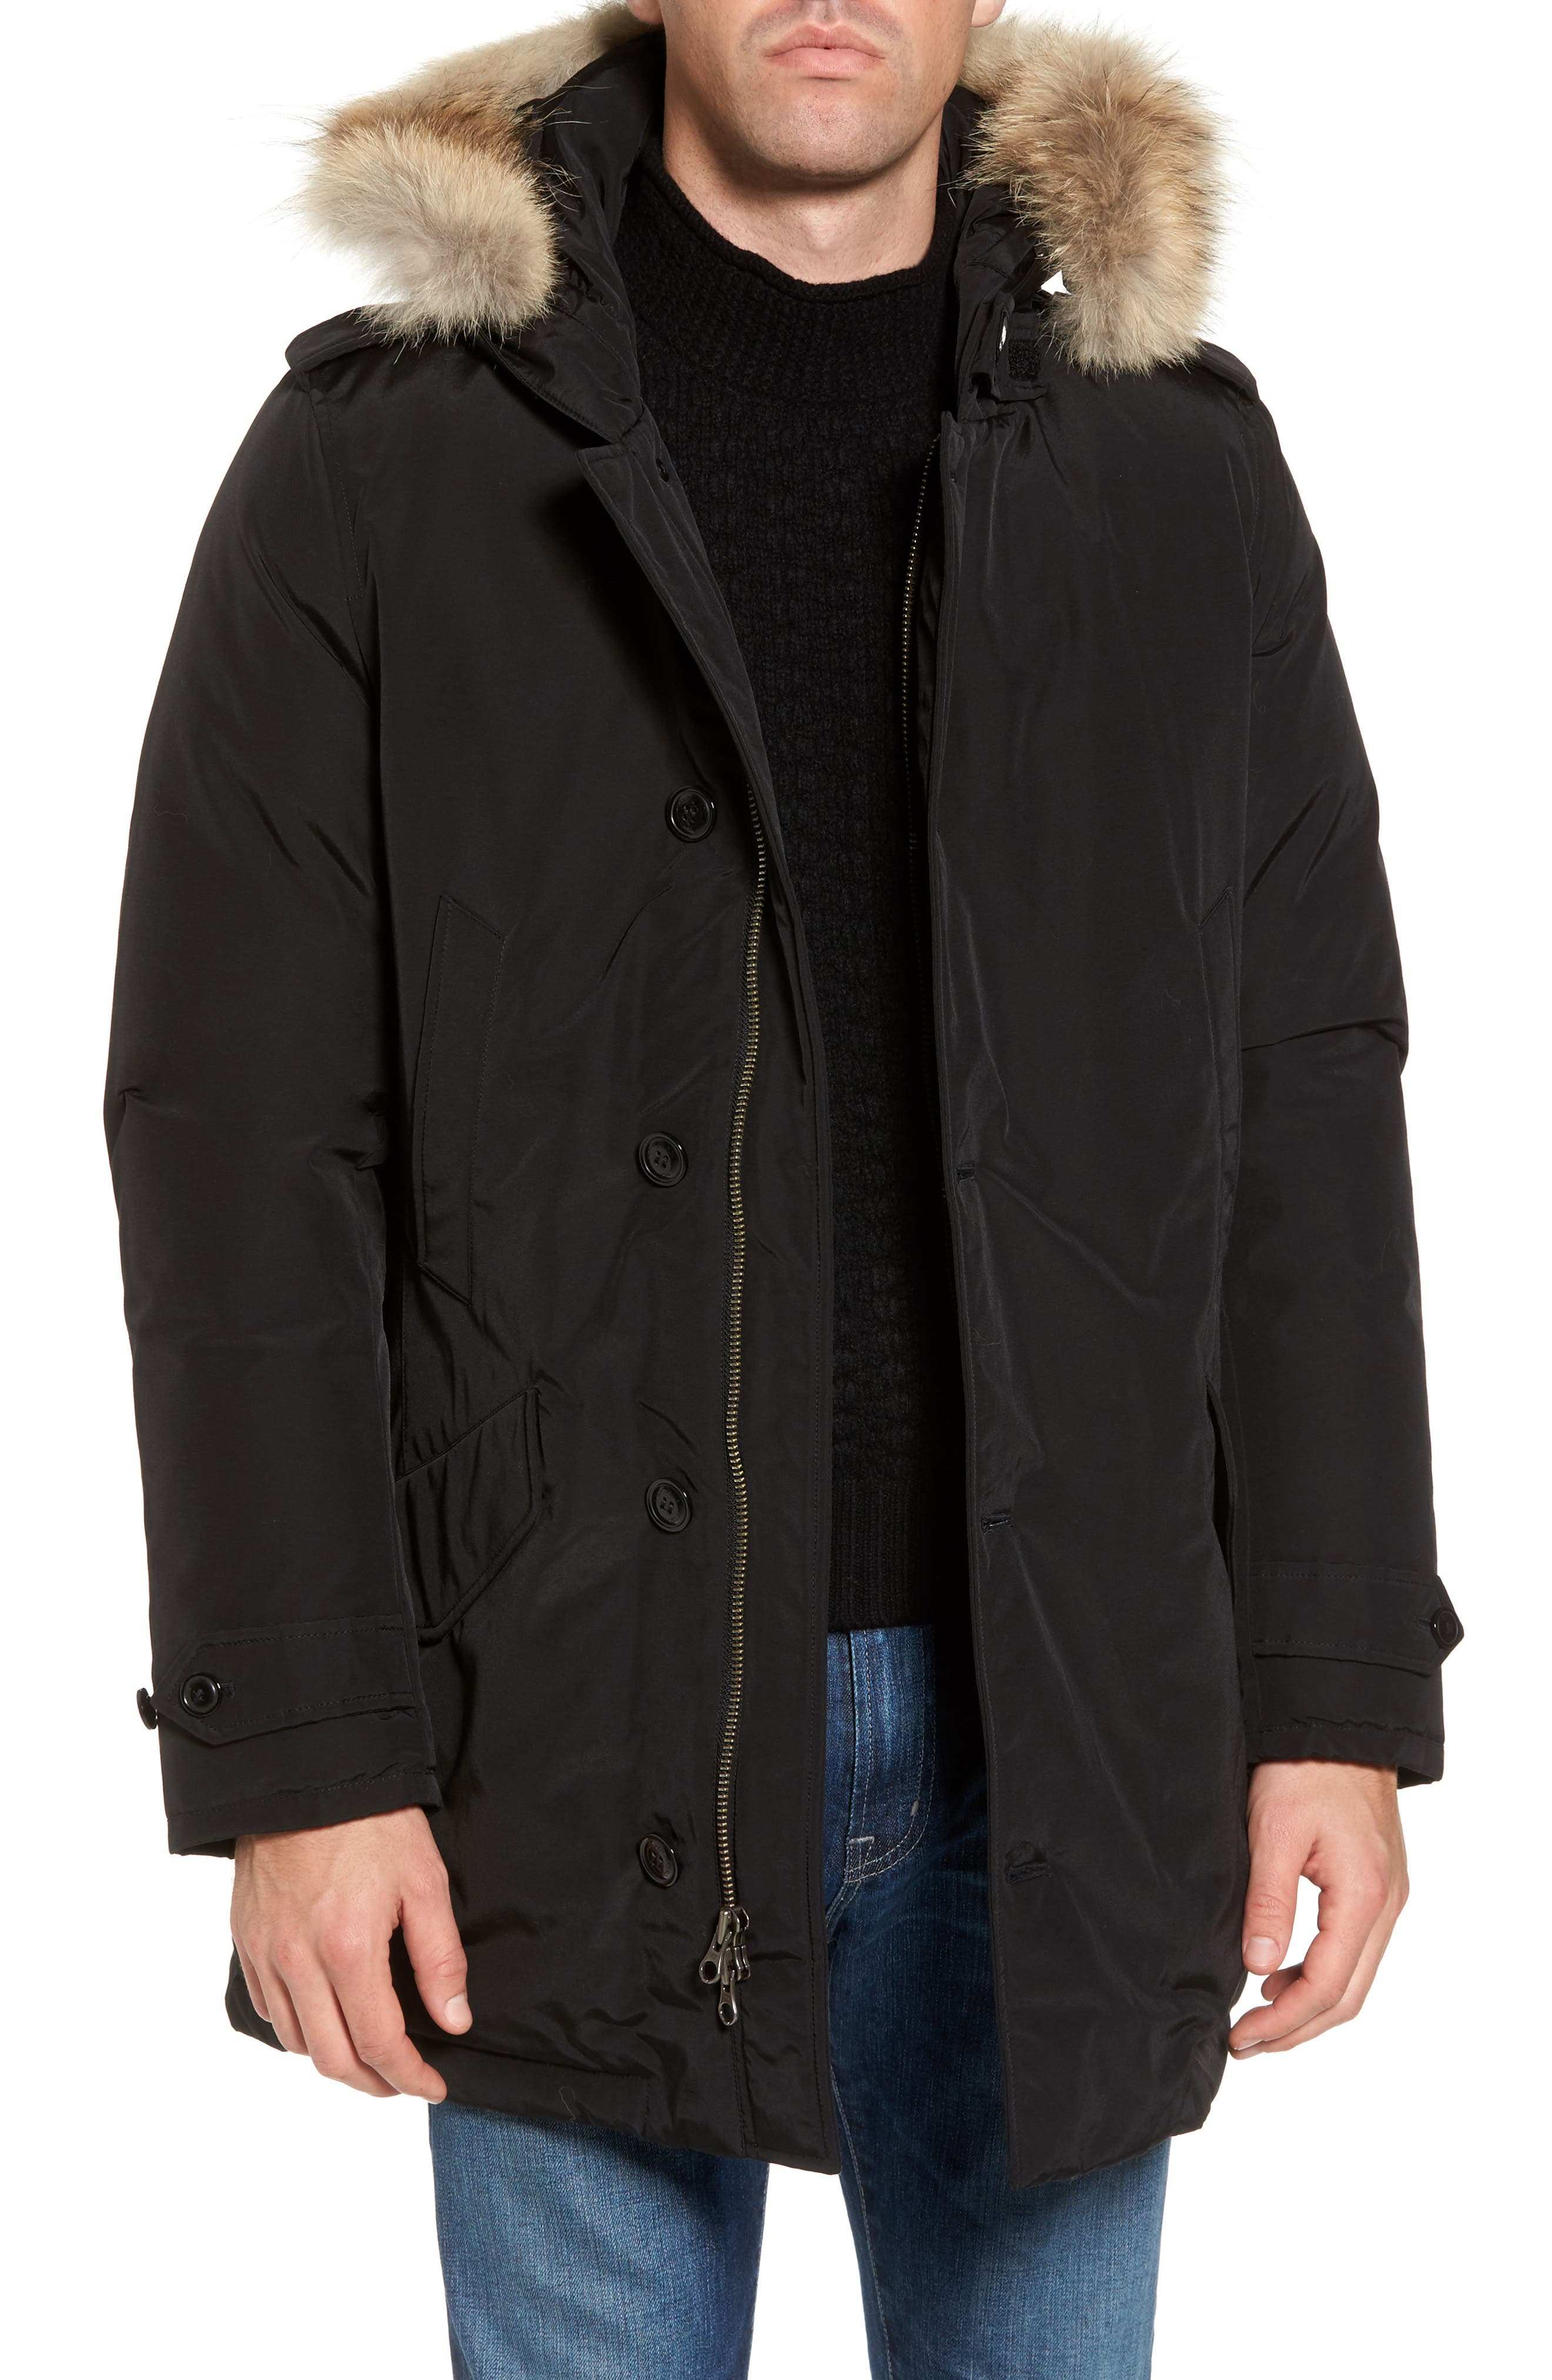 John Rich & Bros. Polar Down Parka with Genuine Coyote Fur Trim,                         Main,                         color, 001